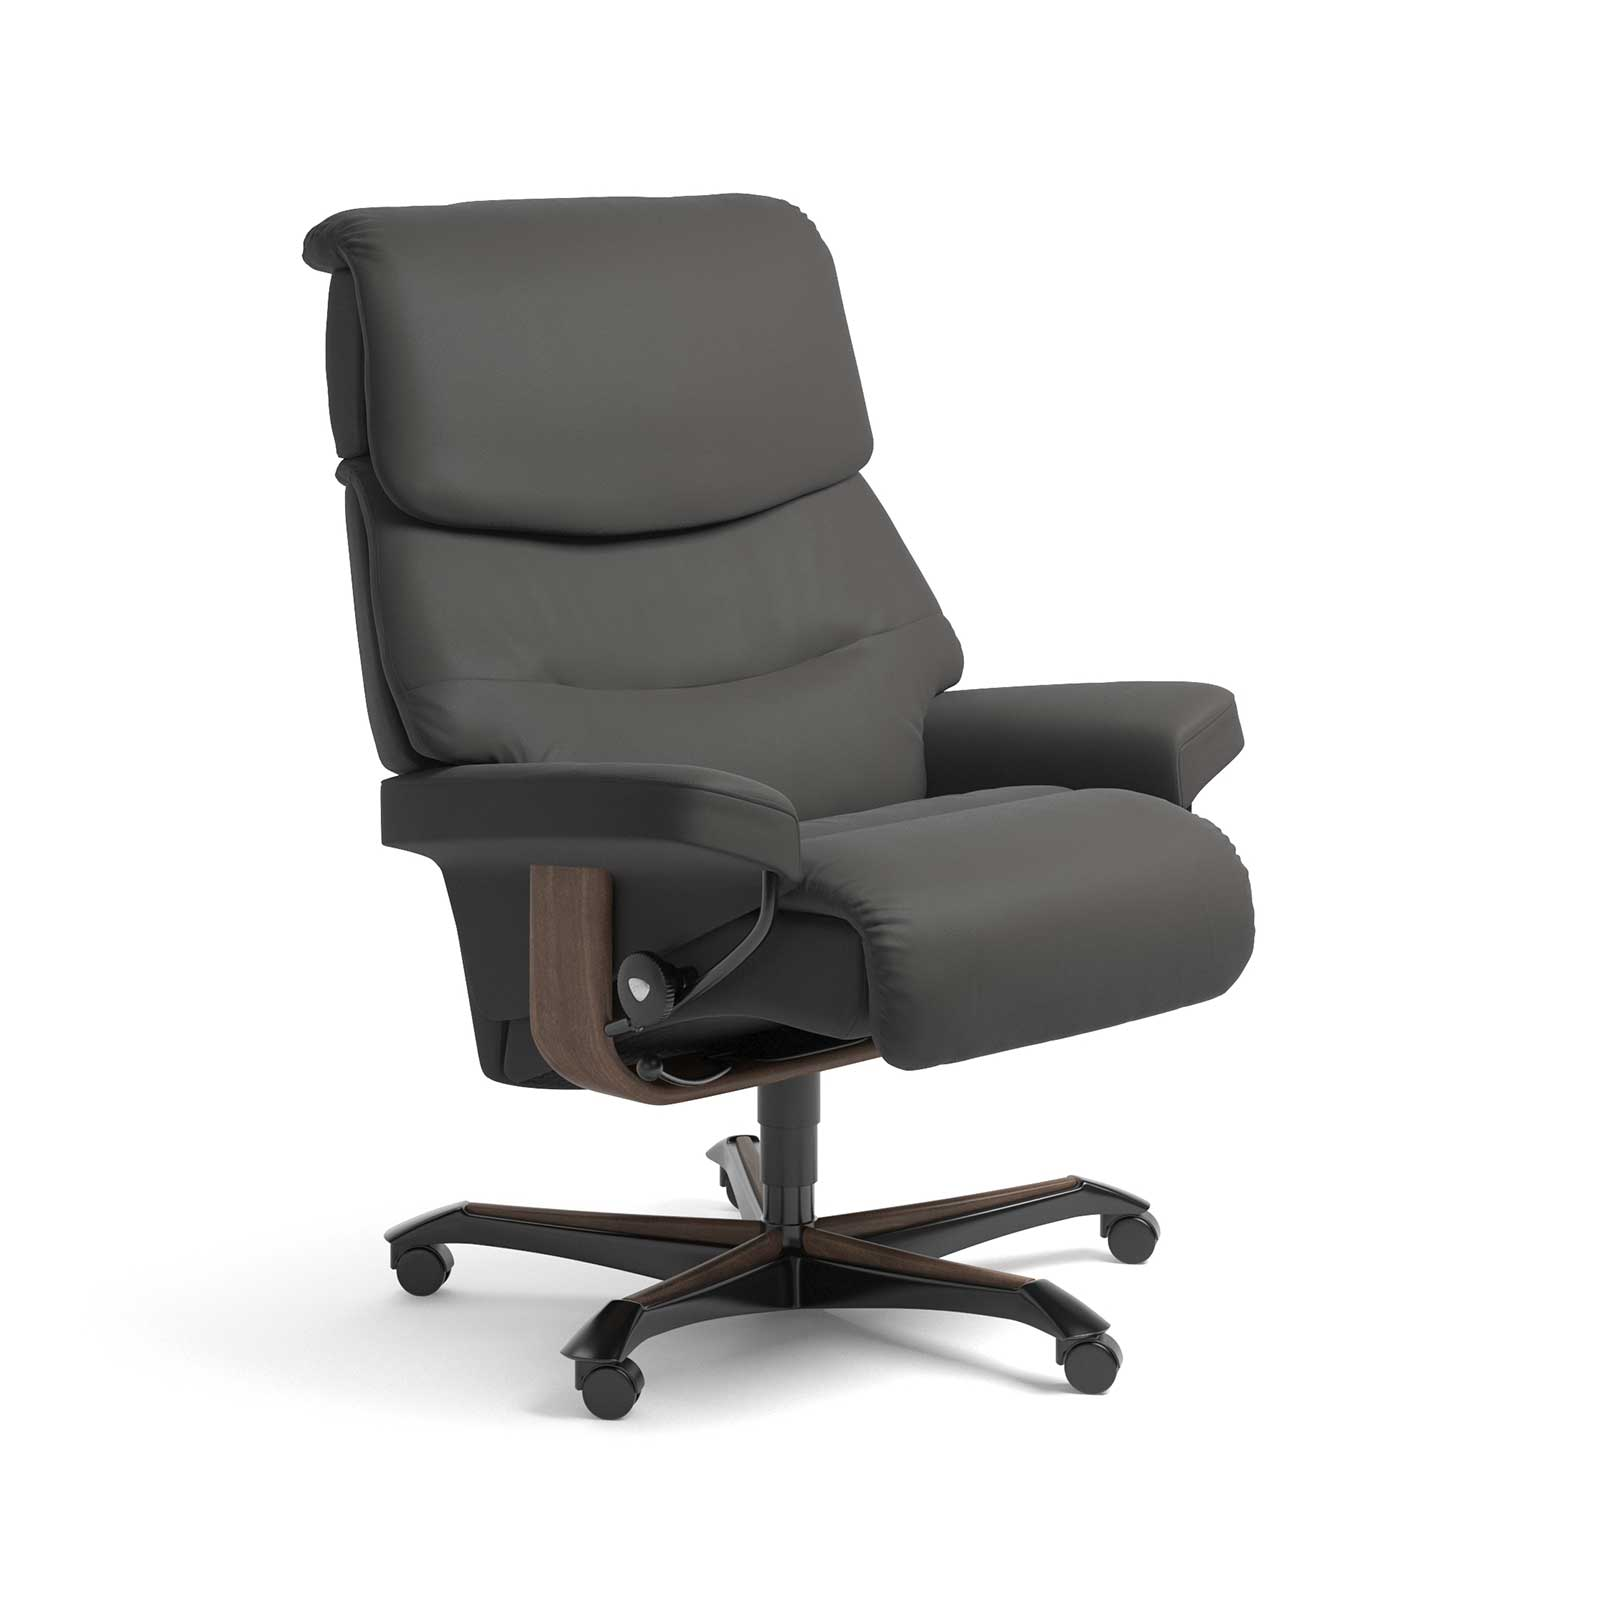 Stressless Bürostuhl Stressless Sessel Capri Home Office Paloma Rock Büro